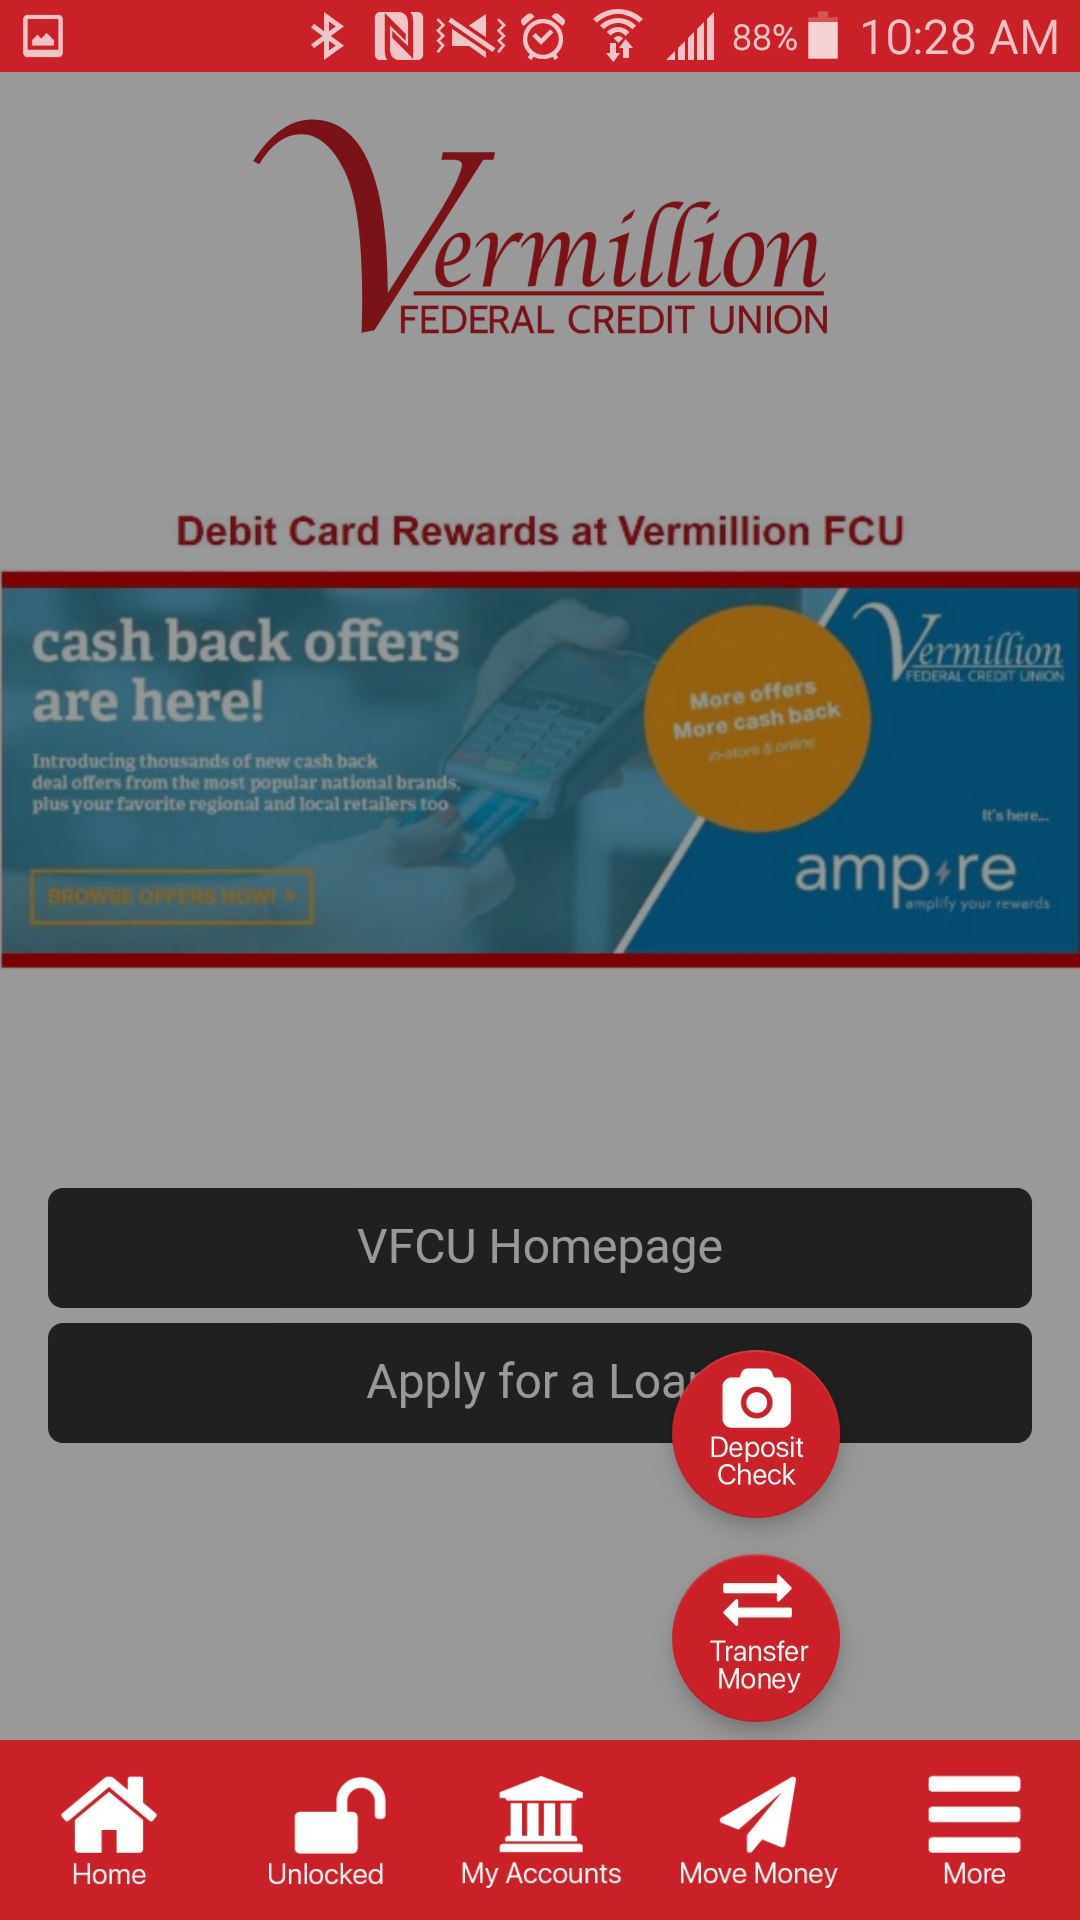 Screenshot of Vermillion FCU mobile app